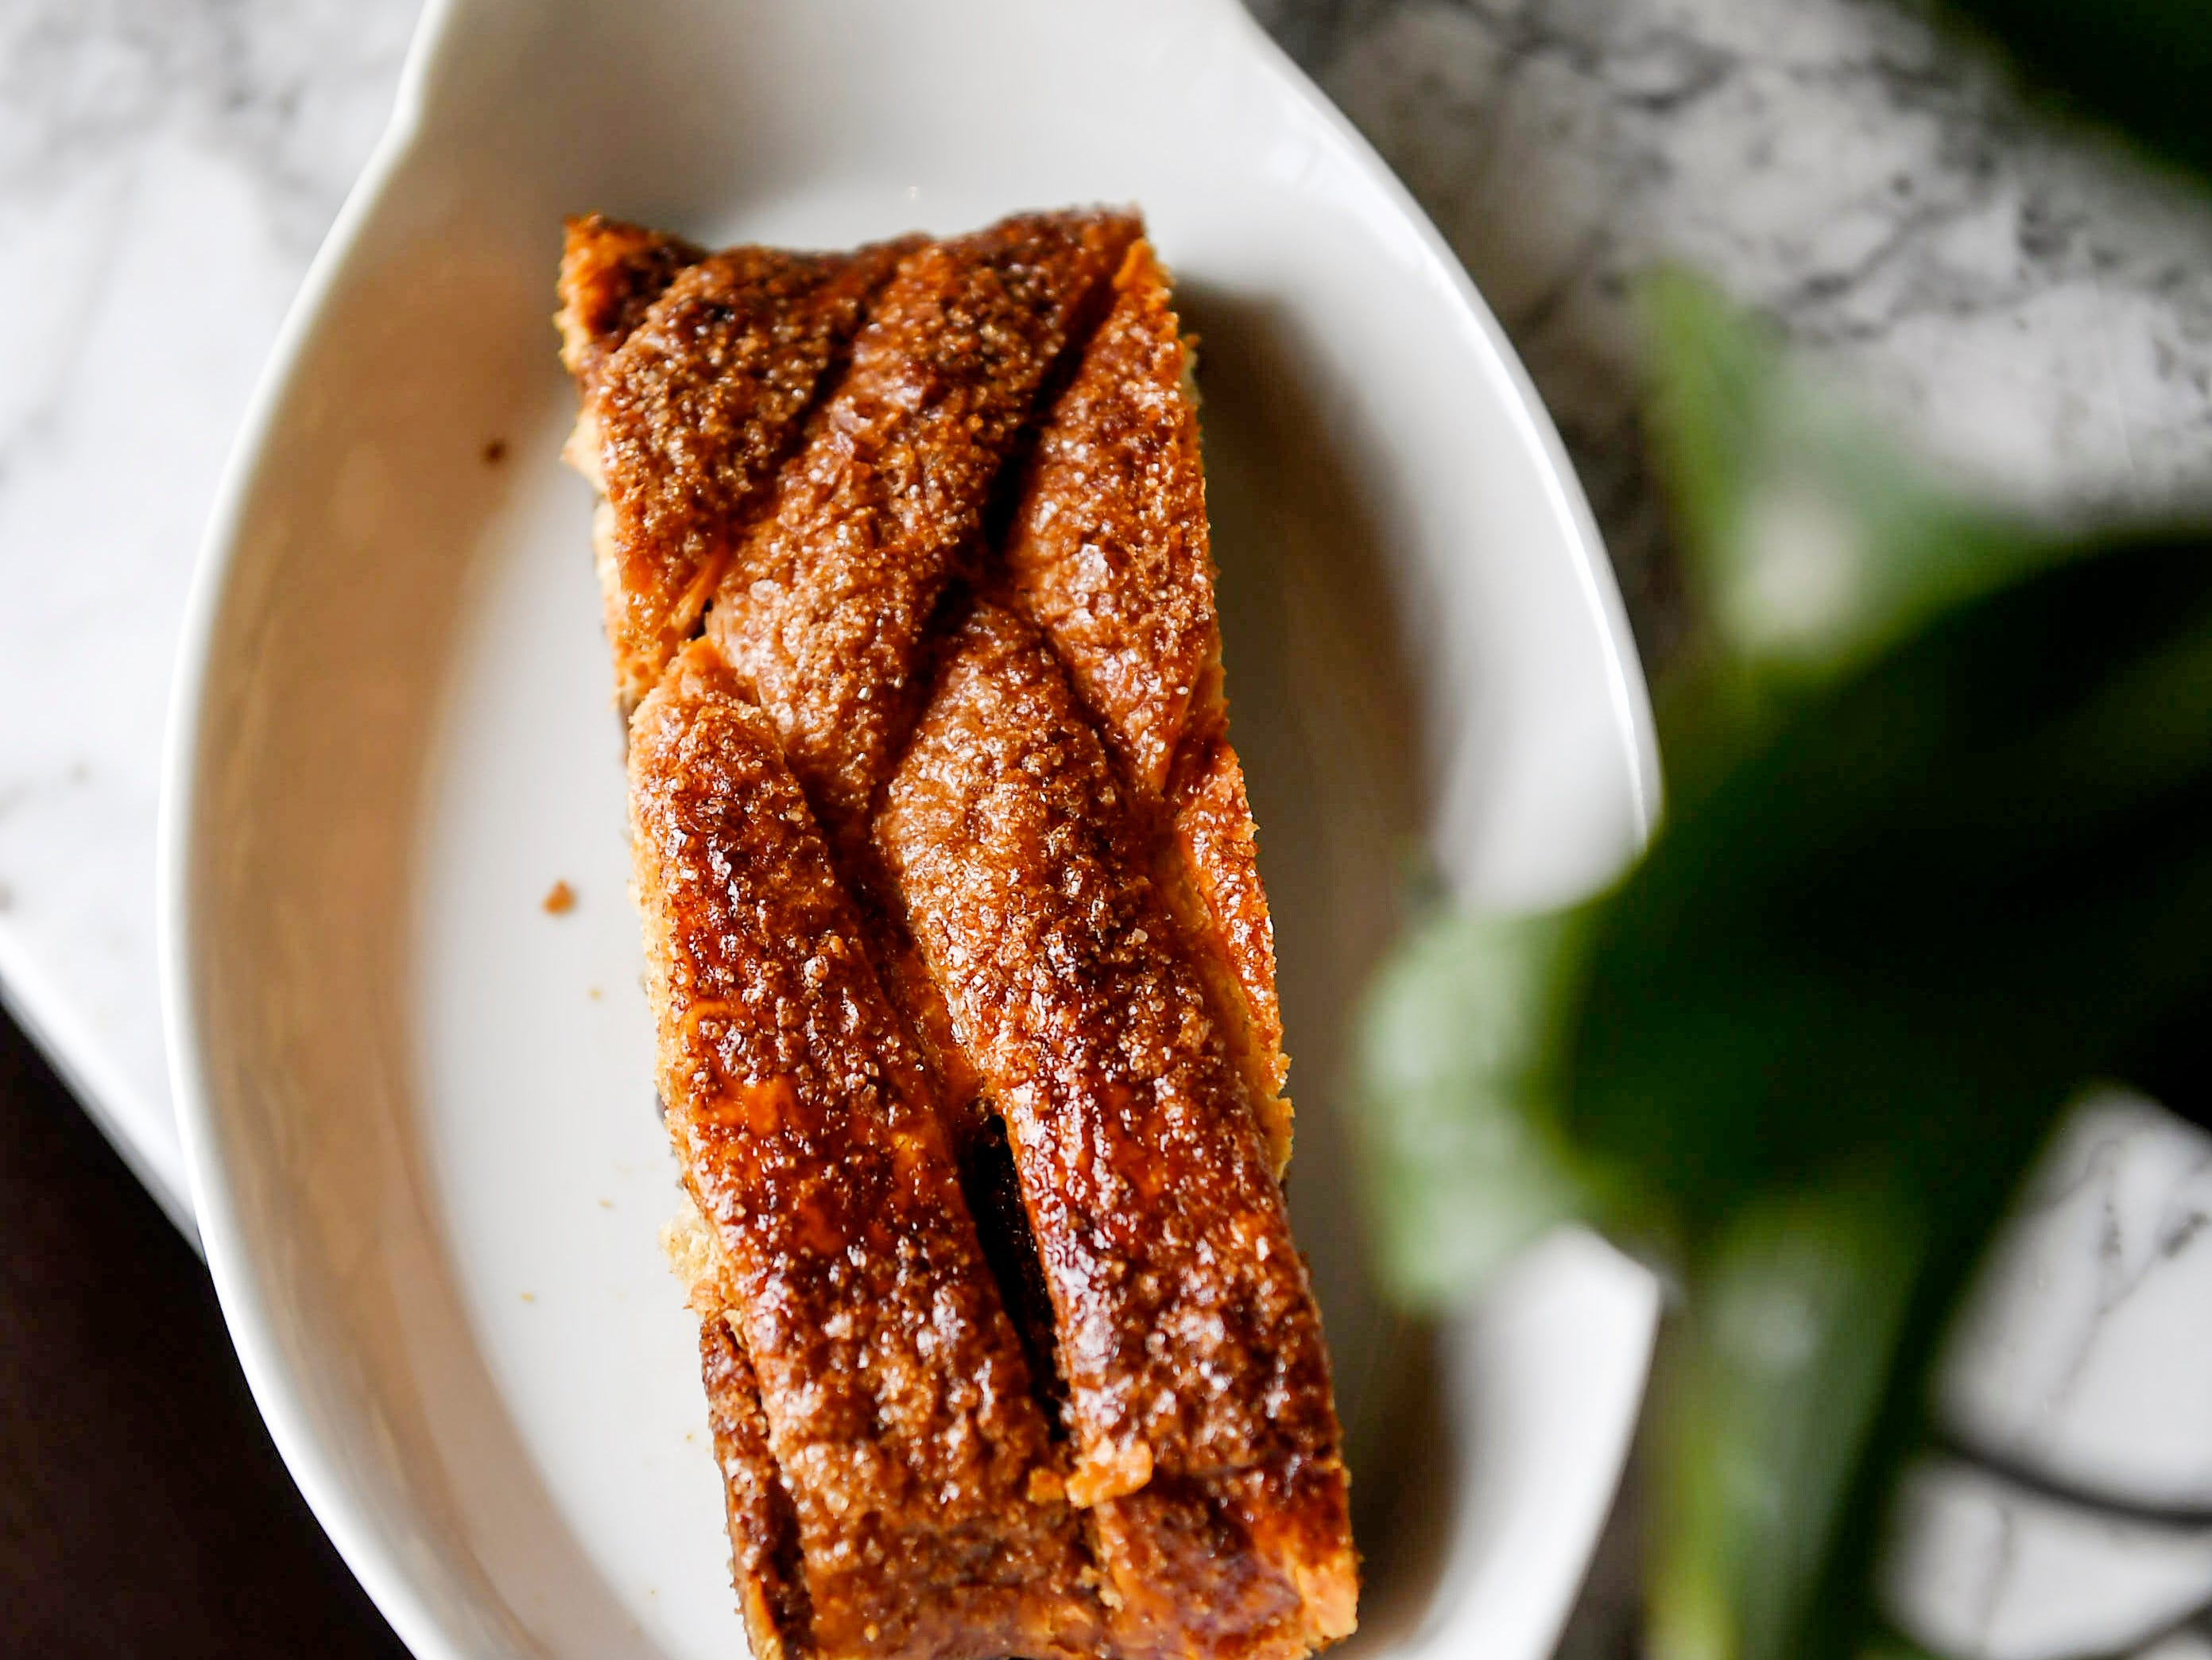 The walnut strudel at OWL Bakery has a thick dense filling of finely ground walnuts, sugar and warm spices of cinnamon and clove, all surrounded by a dark-golden, crisp and flaky pastry.